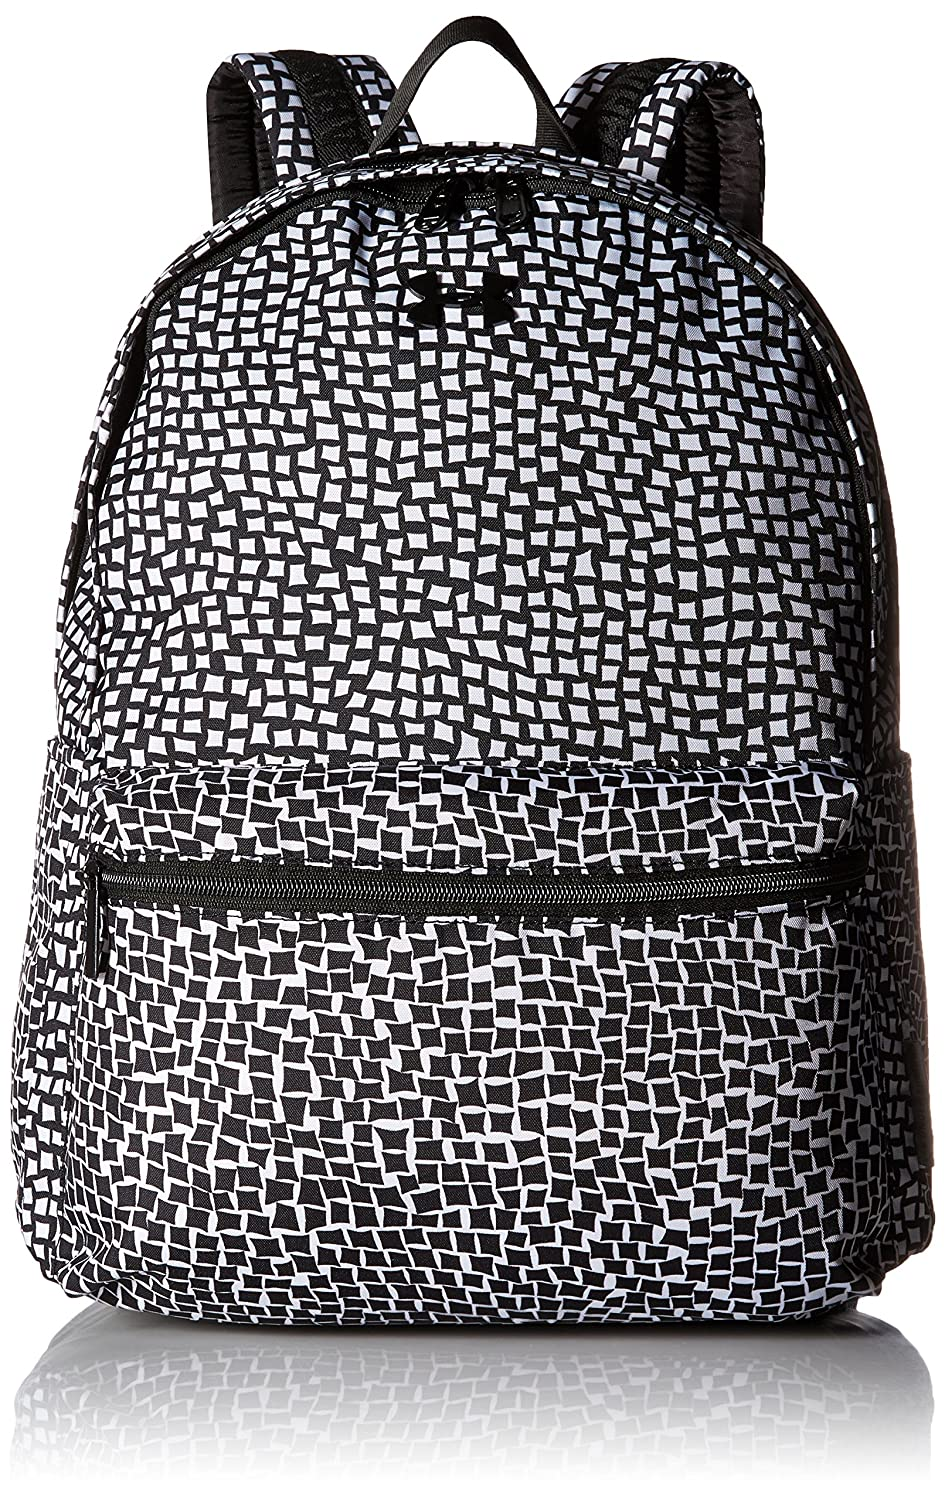 d896e74fb8a Amazon.com  Under Armour Women s Favorite Backpack, Black (002) Black, One  Size  Sports   Outdoors